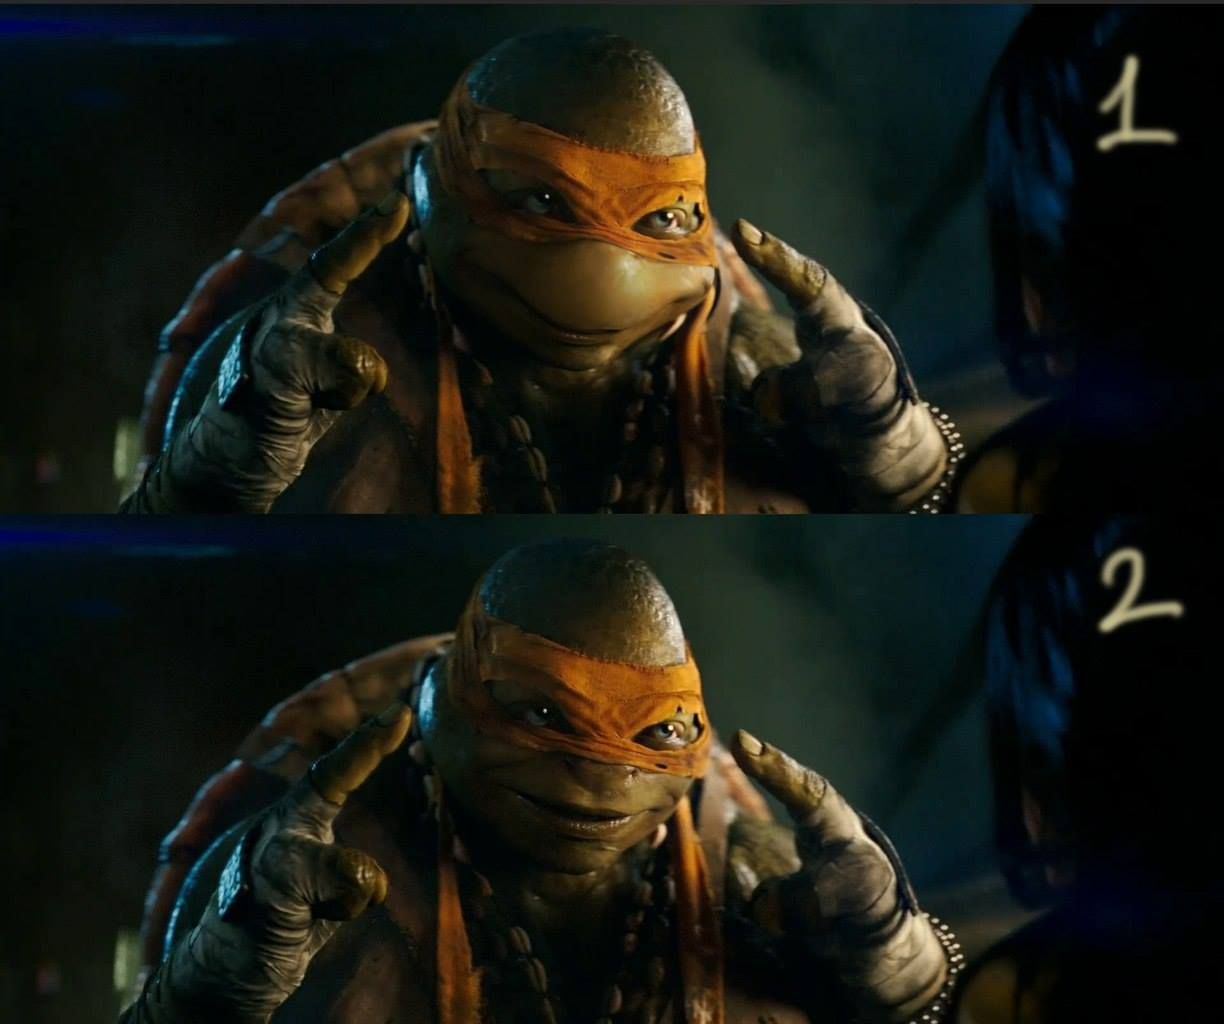 1 Michelangelo  A Super Fan Edits Updated Turtles in Teenage Mutant Ninja Turtles Trailer